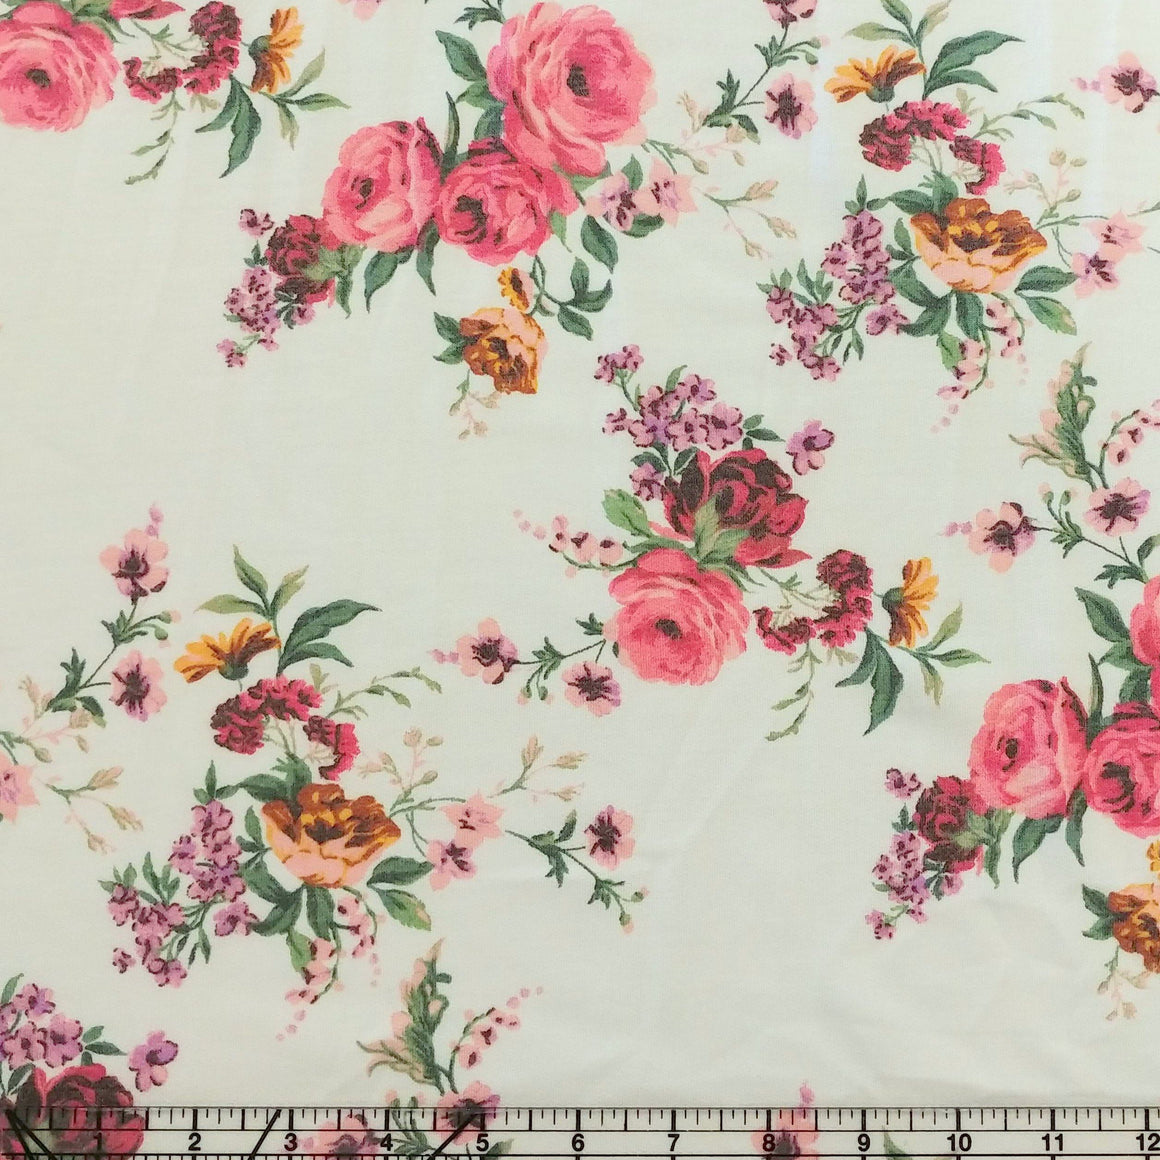 Cream Blush Mustard Peach and Green Floral French Terry Knit Fabric, 1 Yard - Raspberry Creek Fabrics